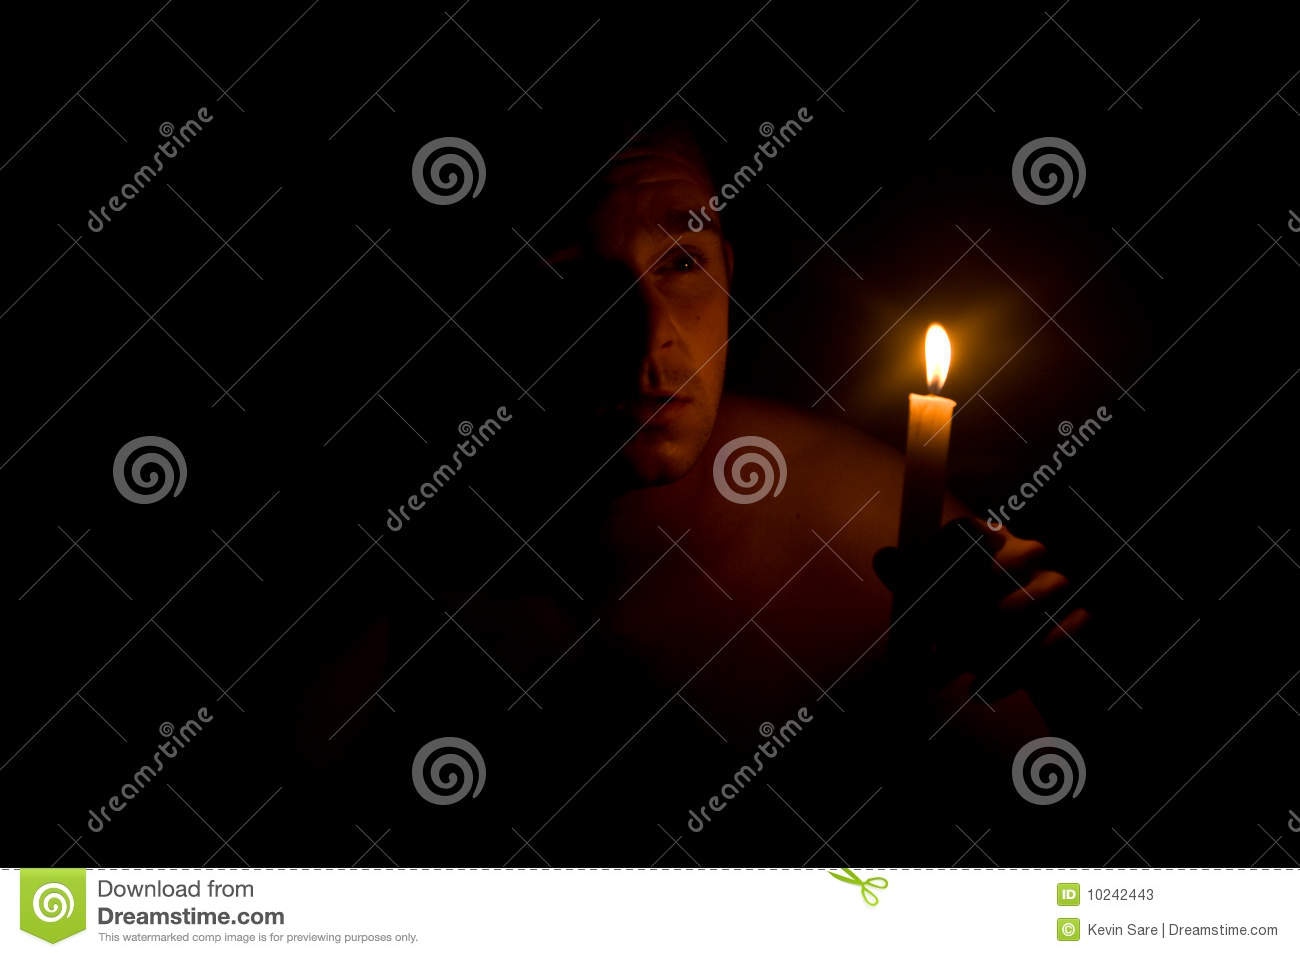 Man Holding A Candle In The Dark Stock Photo - Image: 50698160 for Holding Candle In The Dark  166kxo